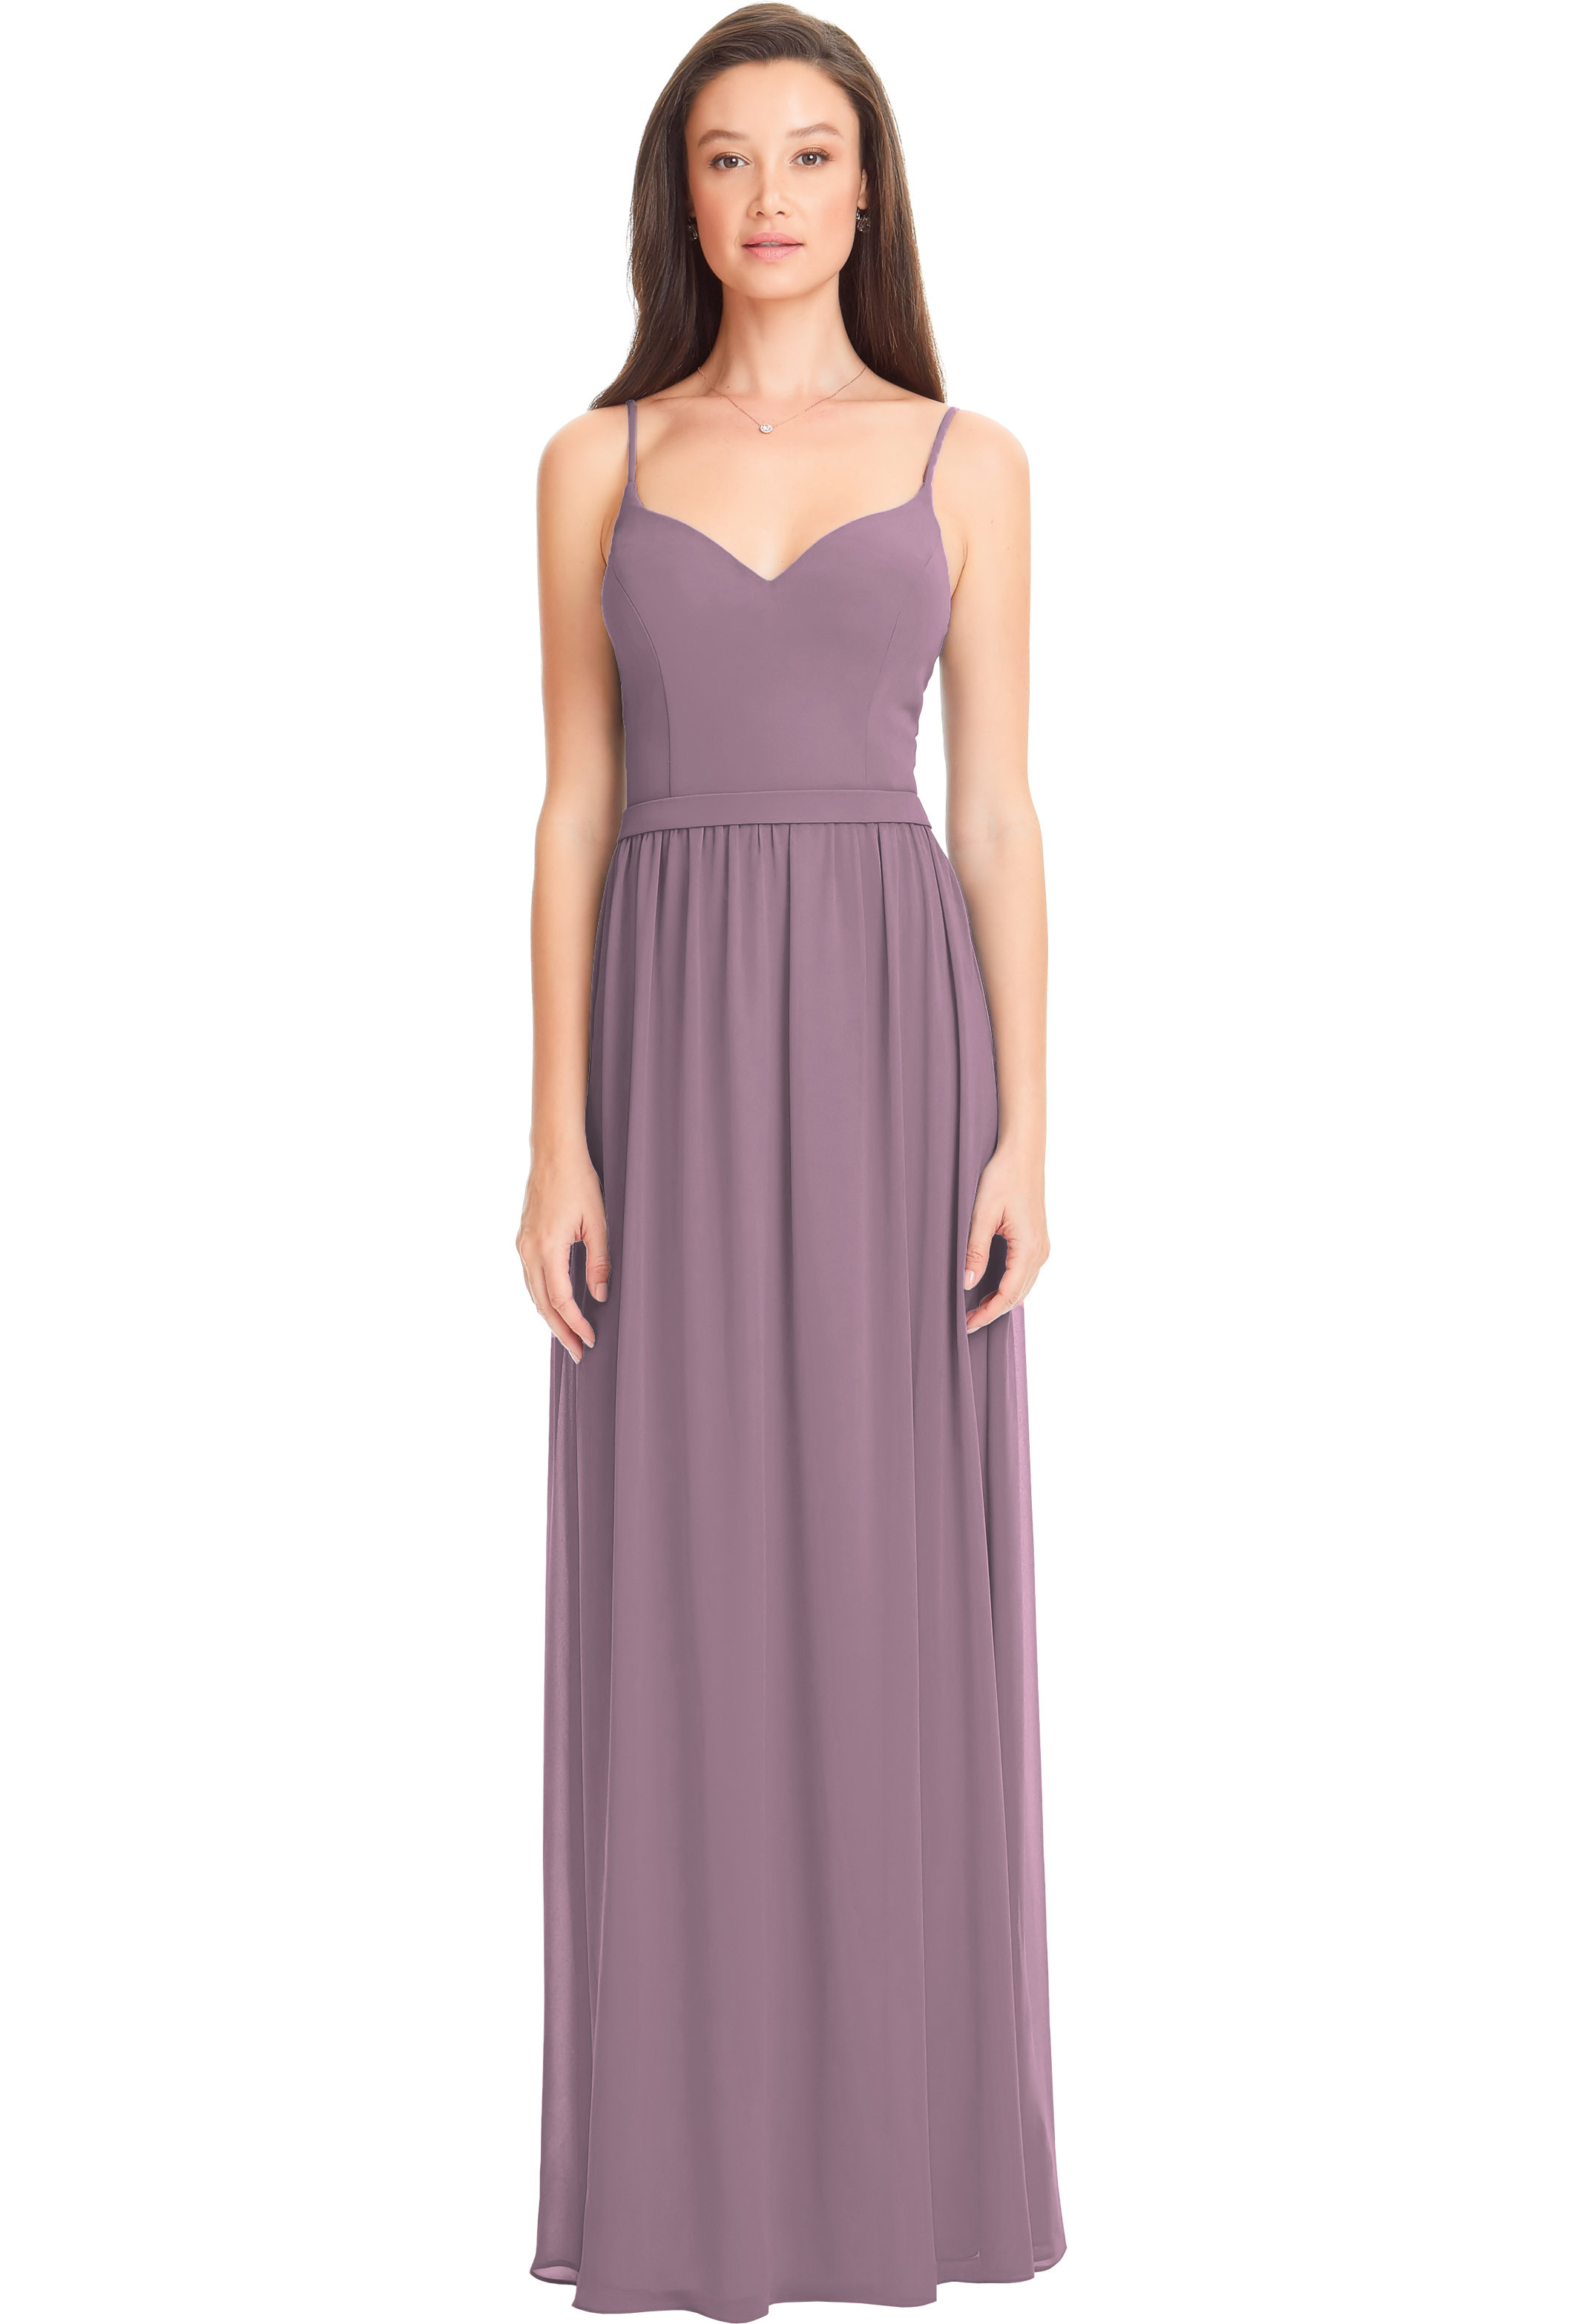 Bill Levkoff WISTERIA Chiffon Sweetheart A-line gown, $170.00 Front